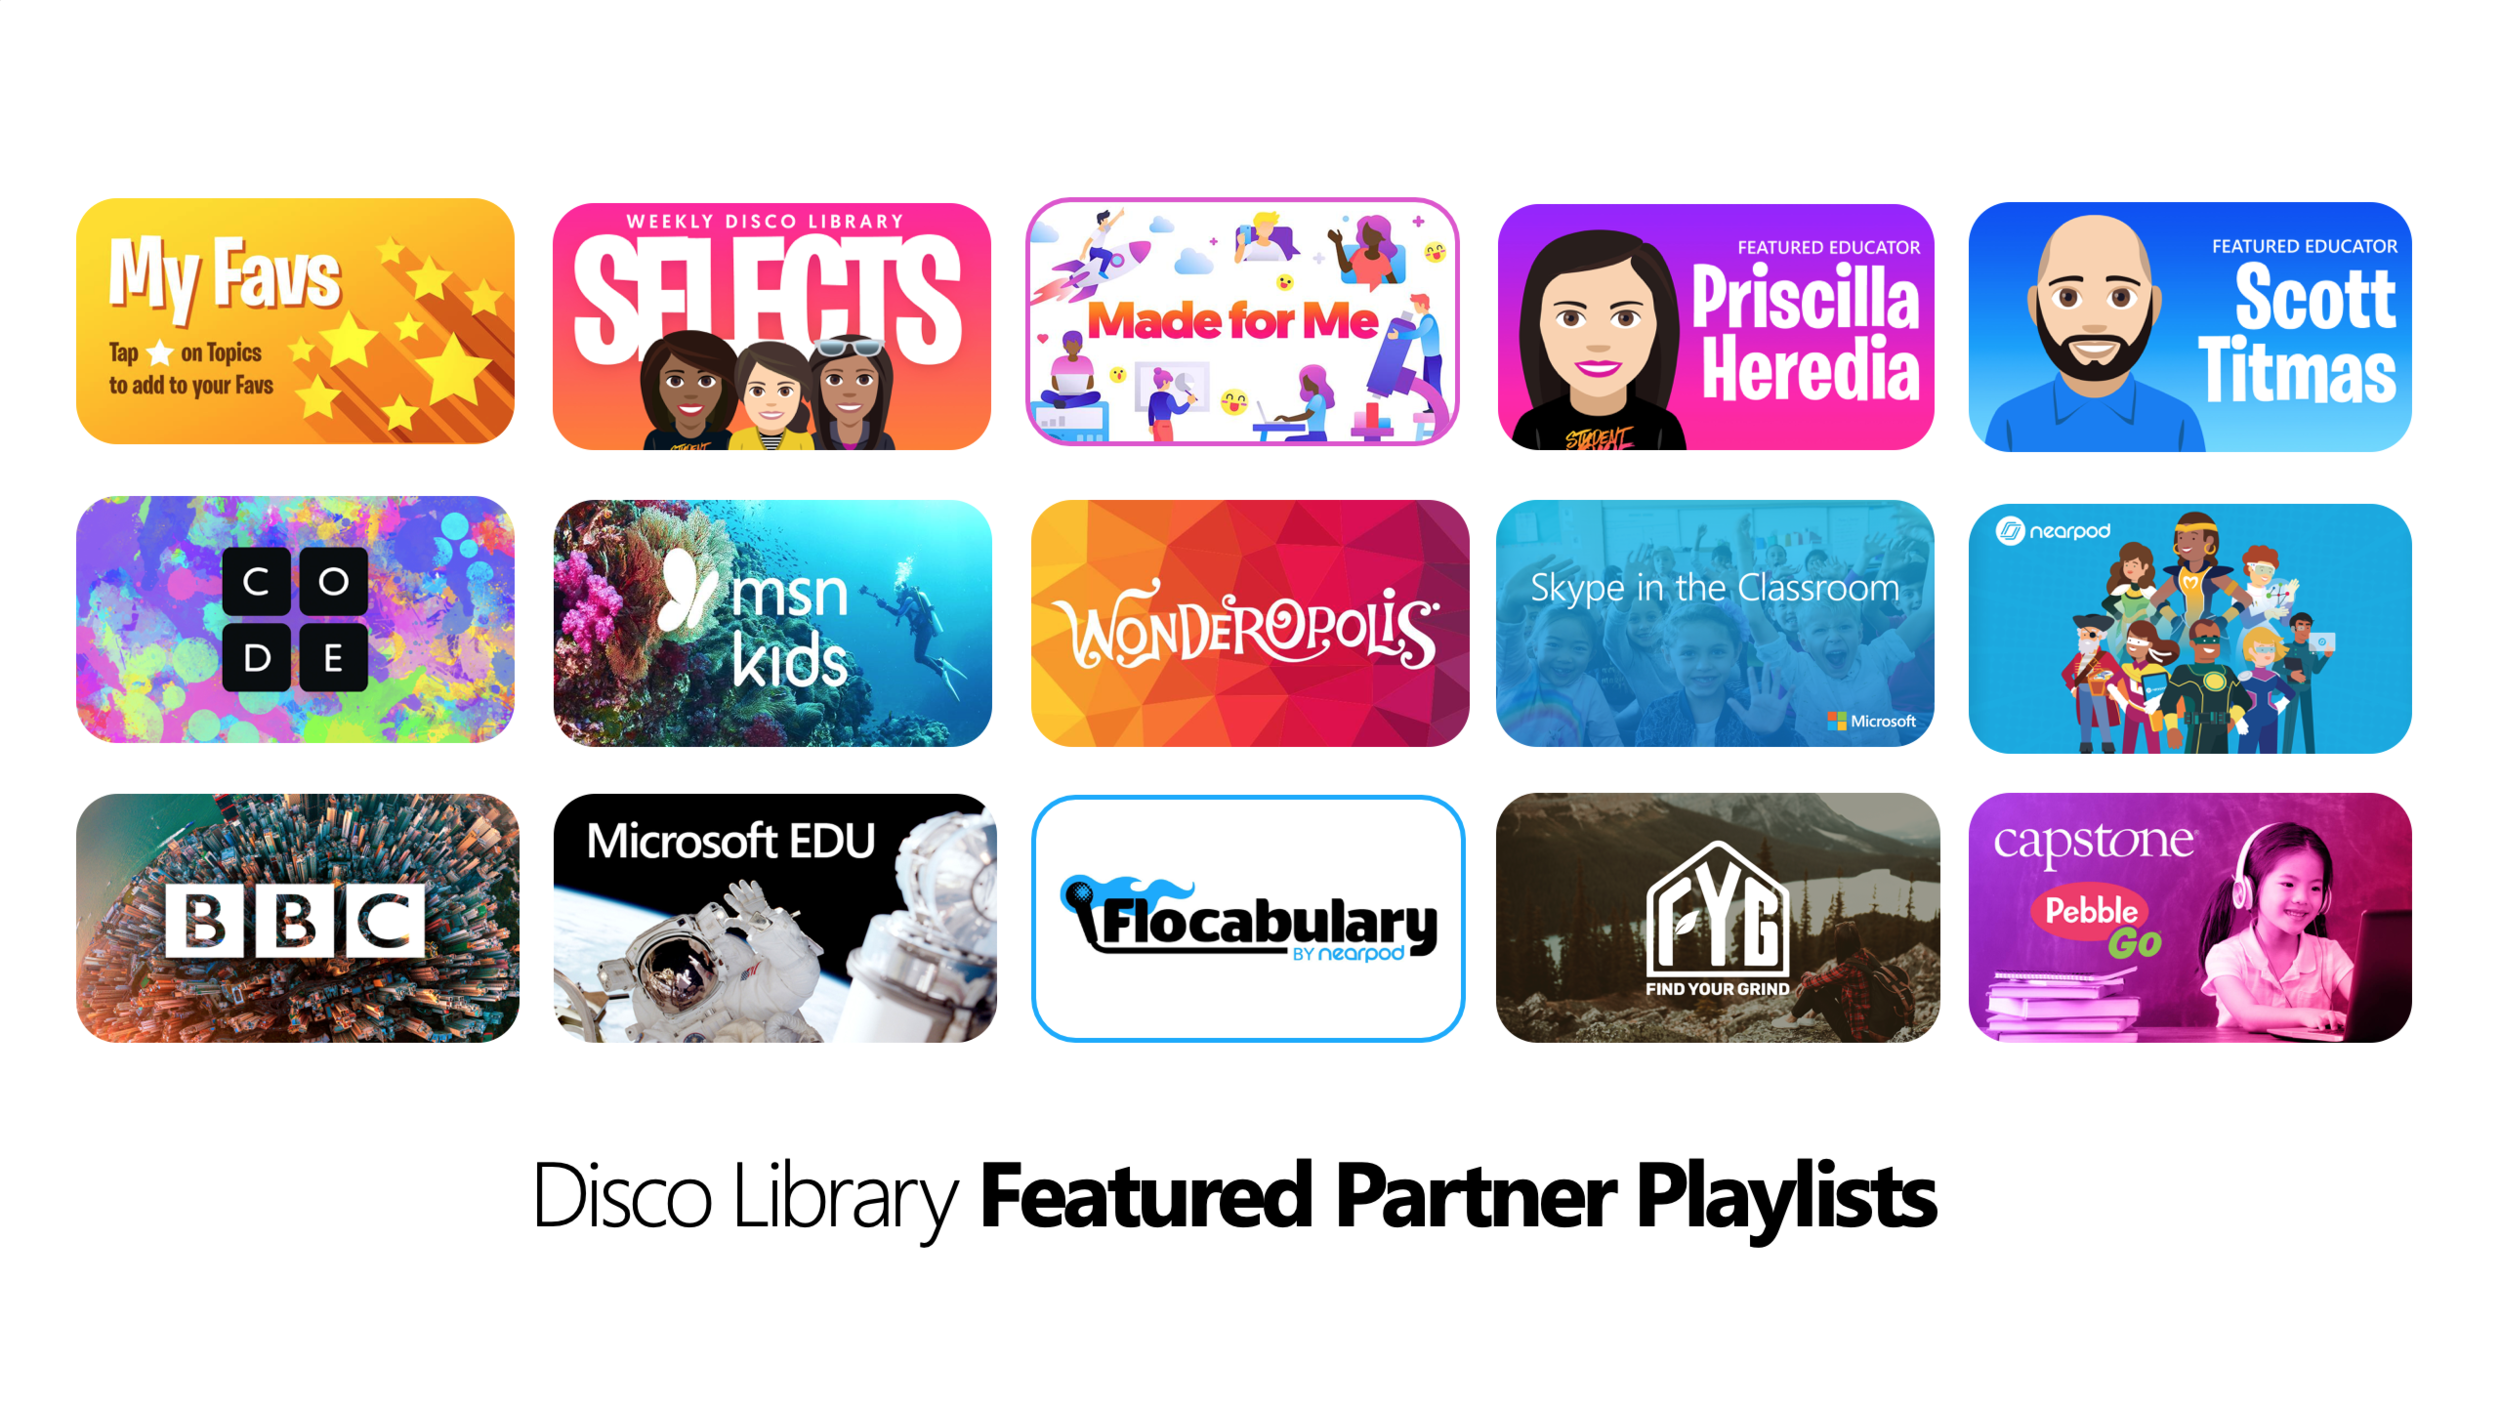 06_DiscoLibrary_Partners_Flipgrid_24June2019_FlipgridLIVE_Annoucement.png